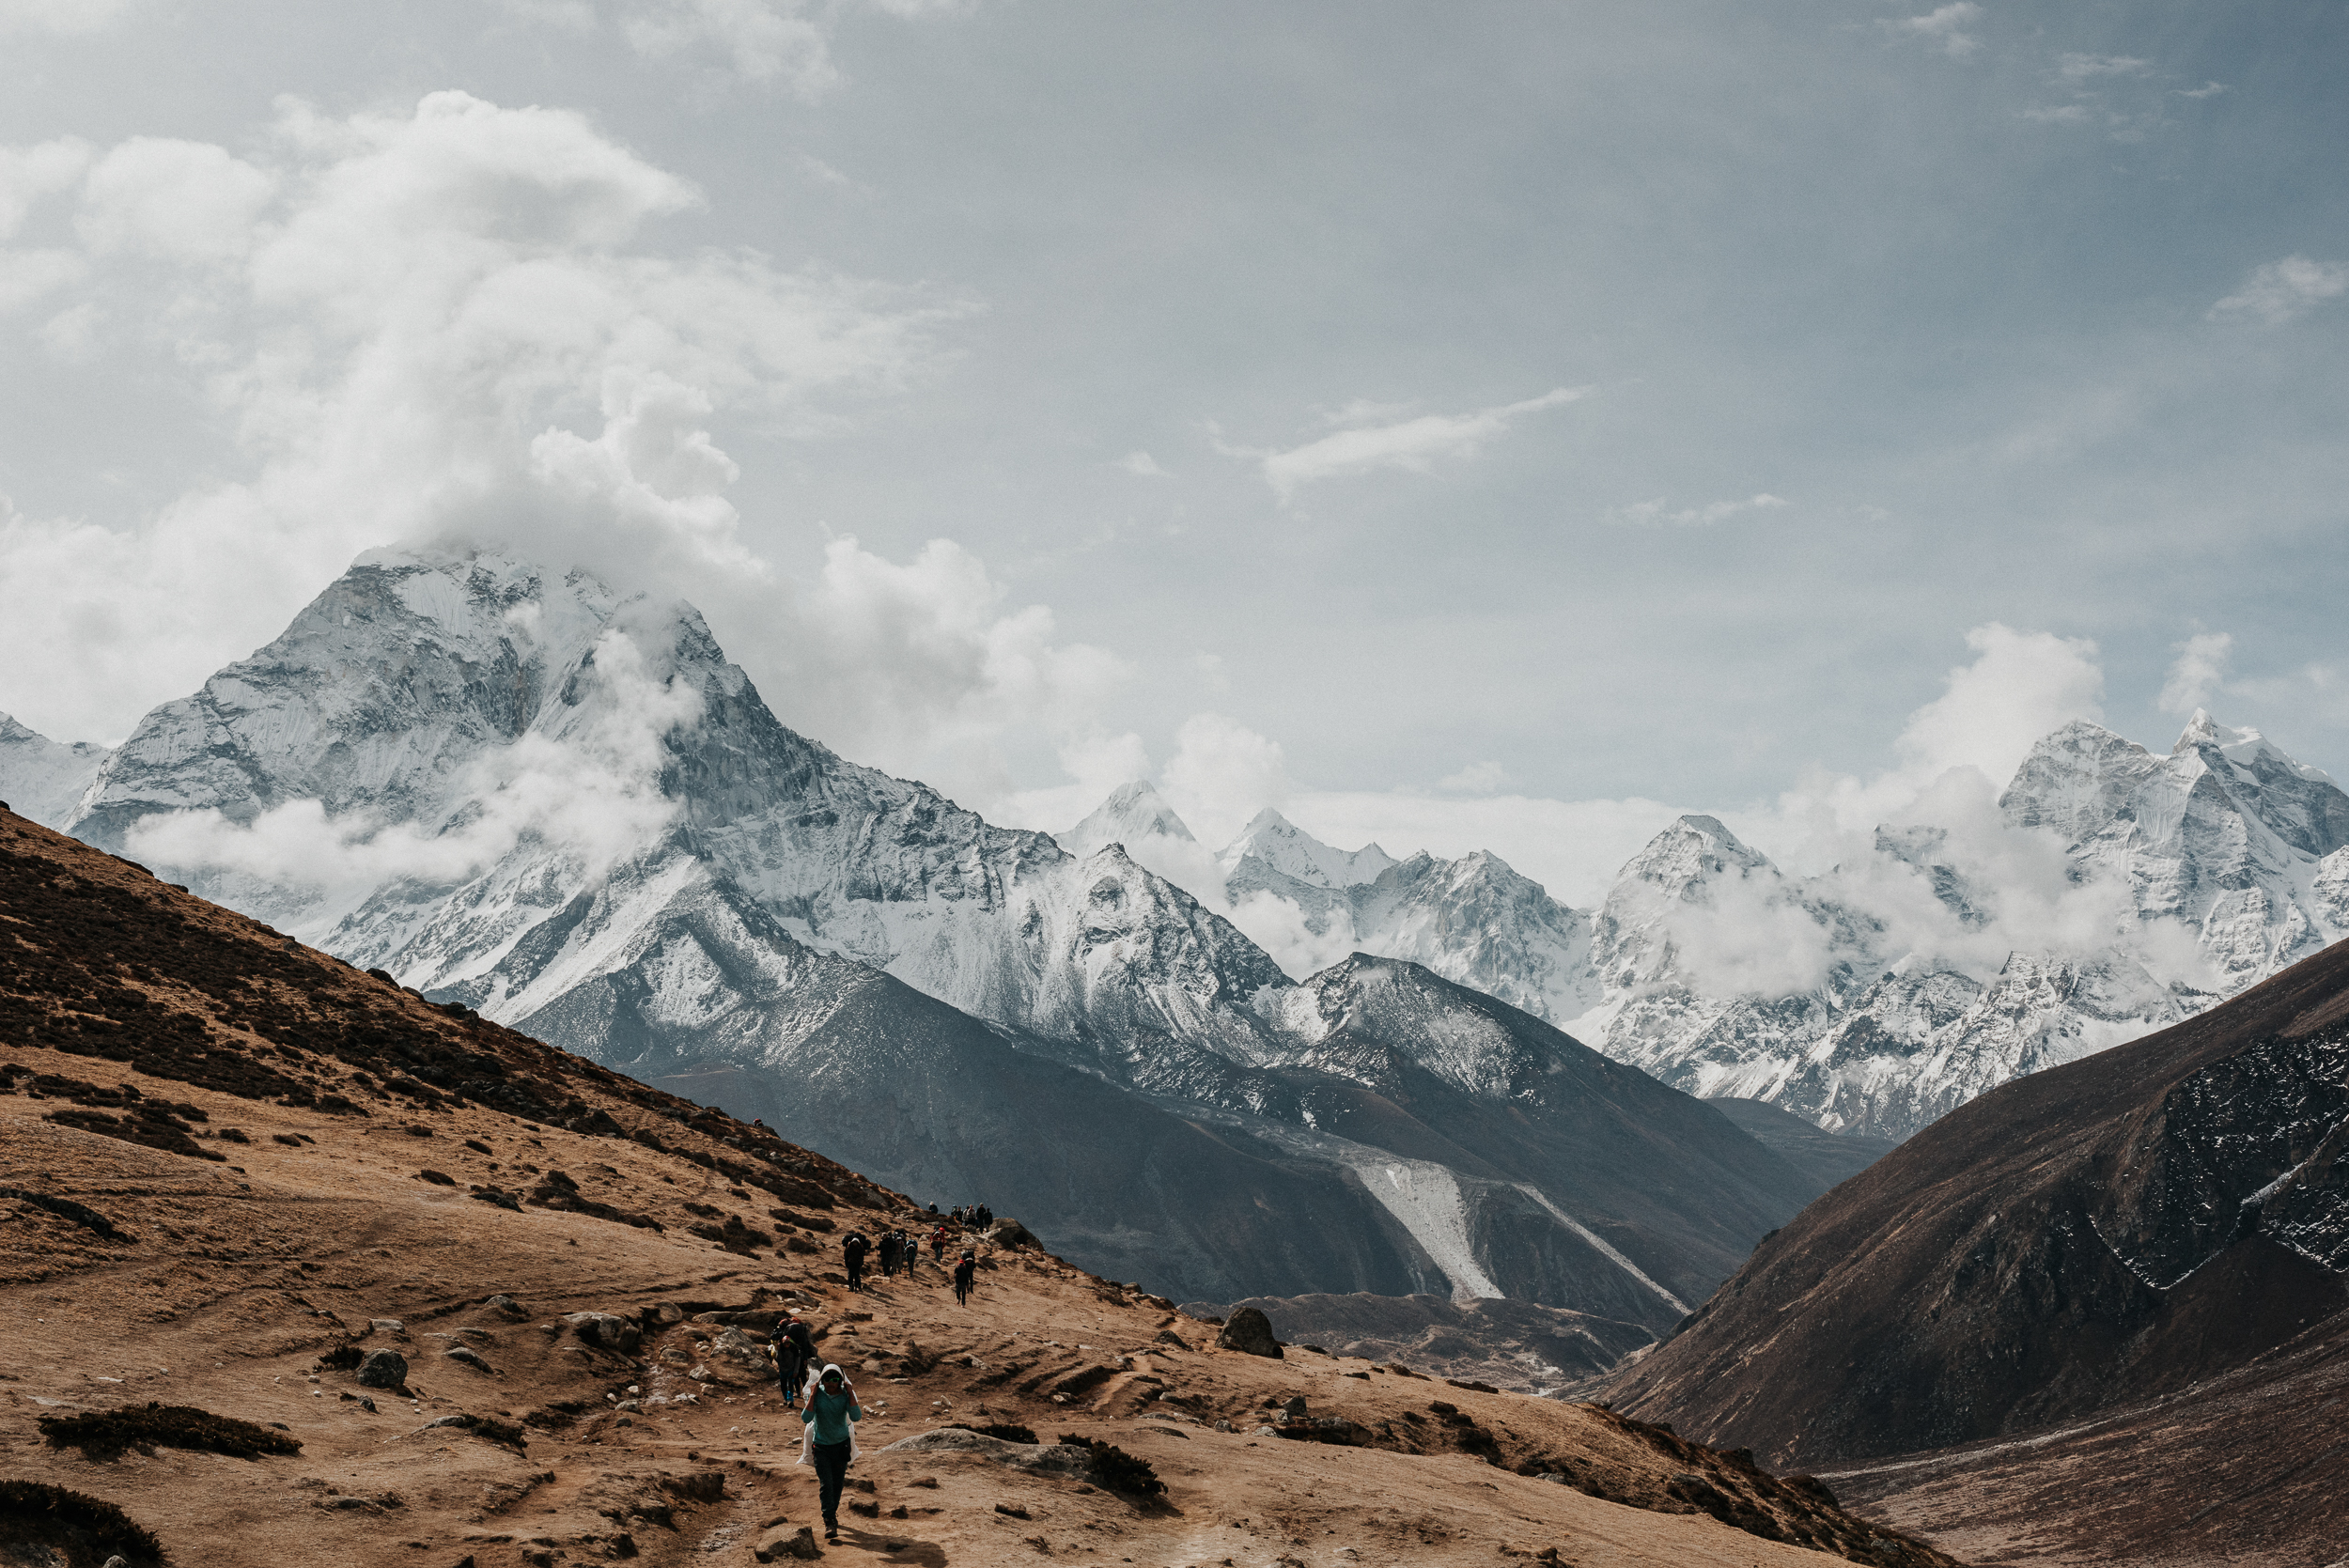 Nepal_EverestBaseCamp_2019_TaraShupe_Photography_DSC_4062.jpg